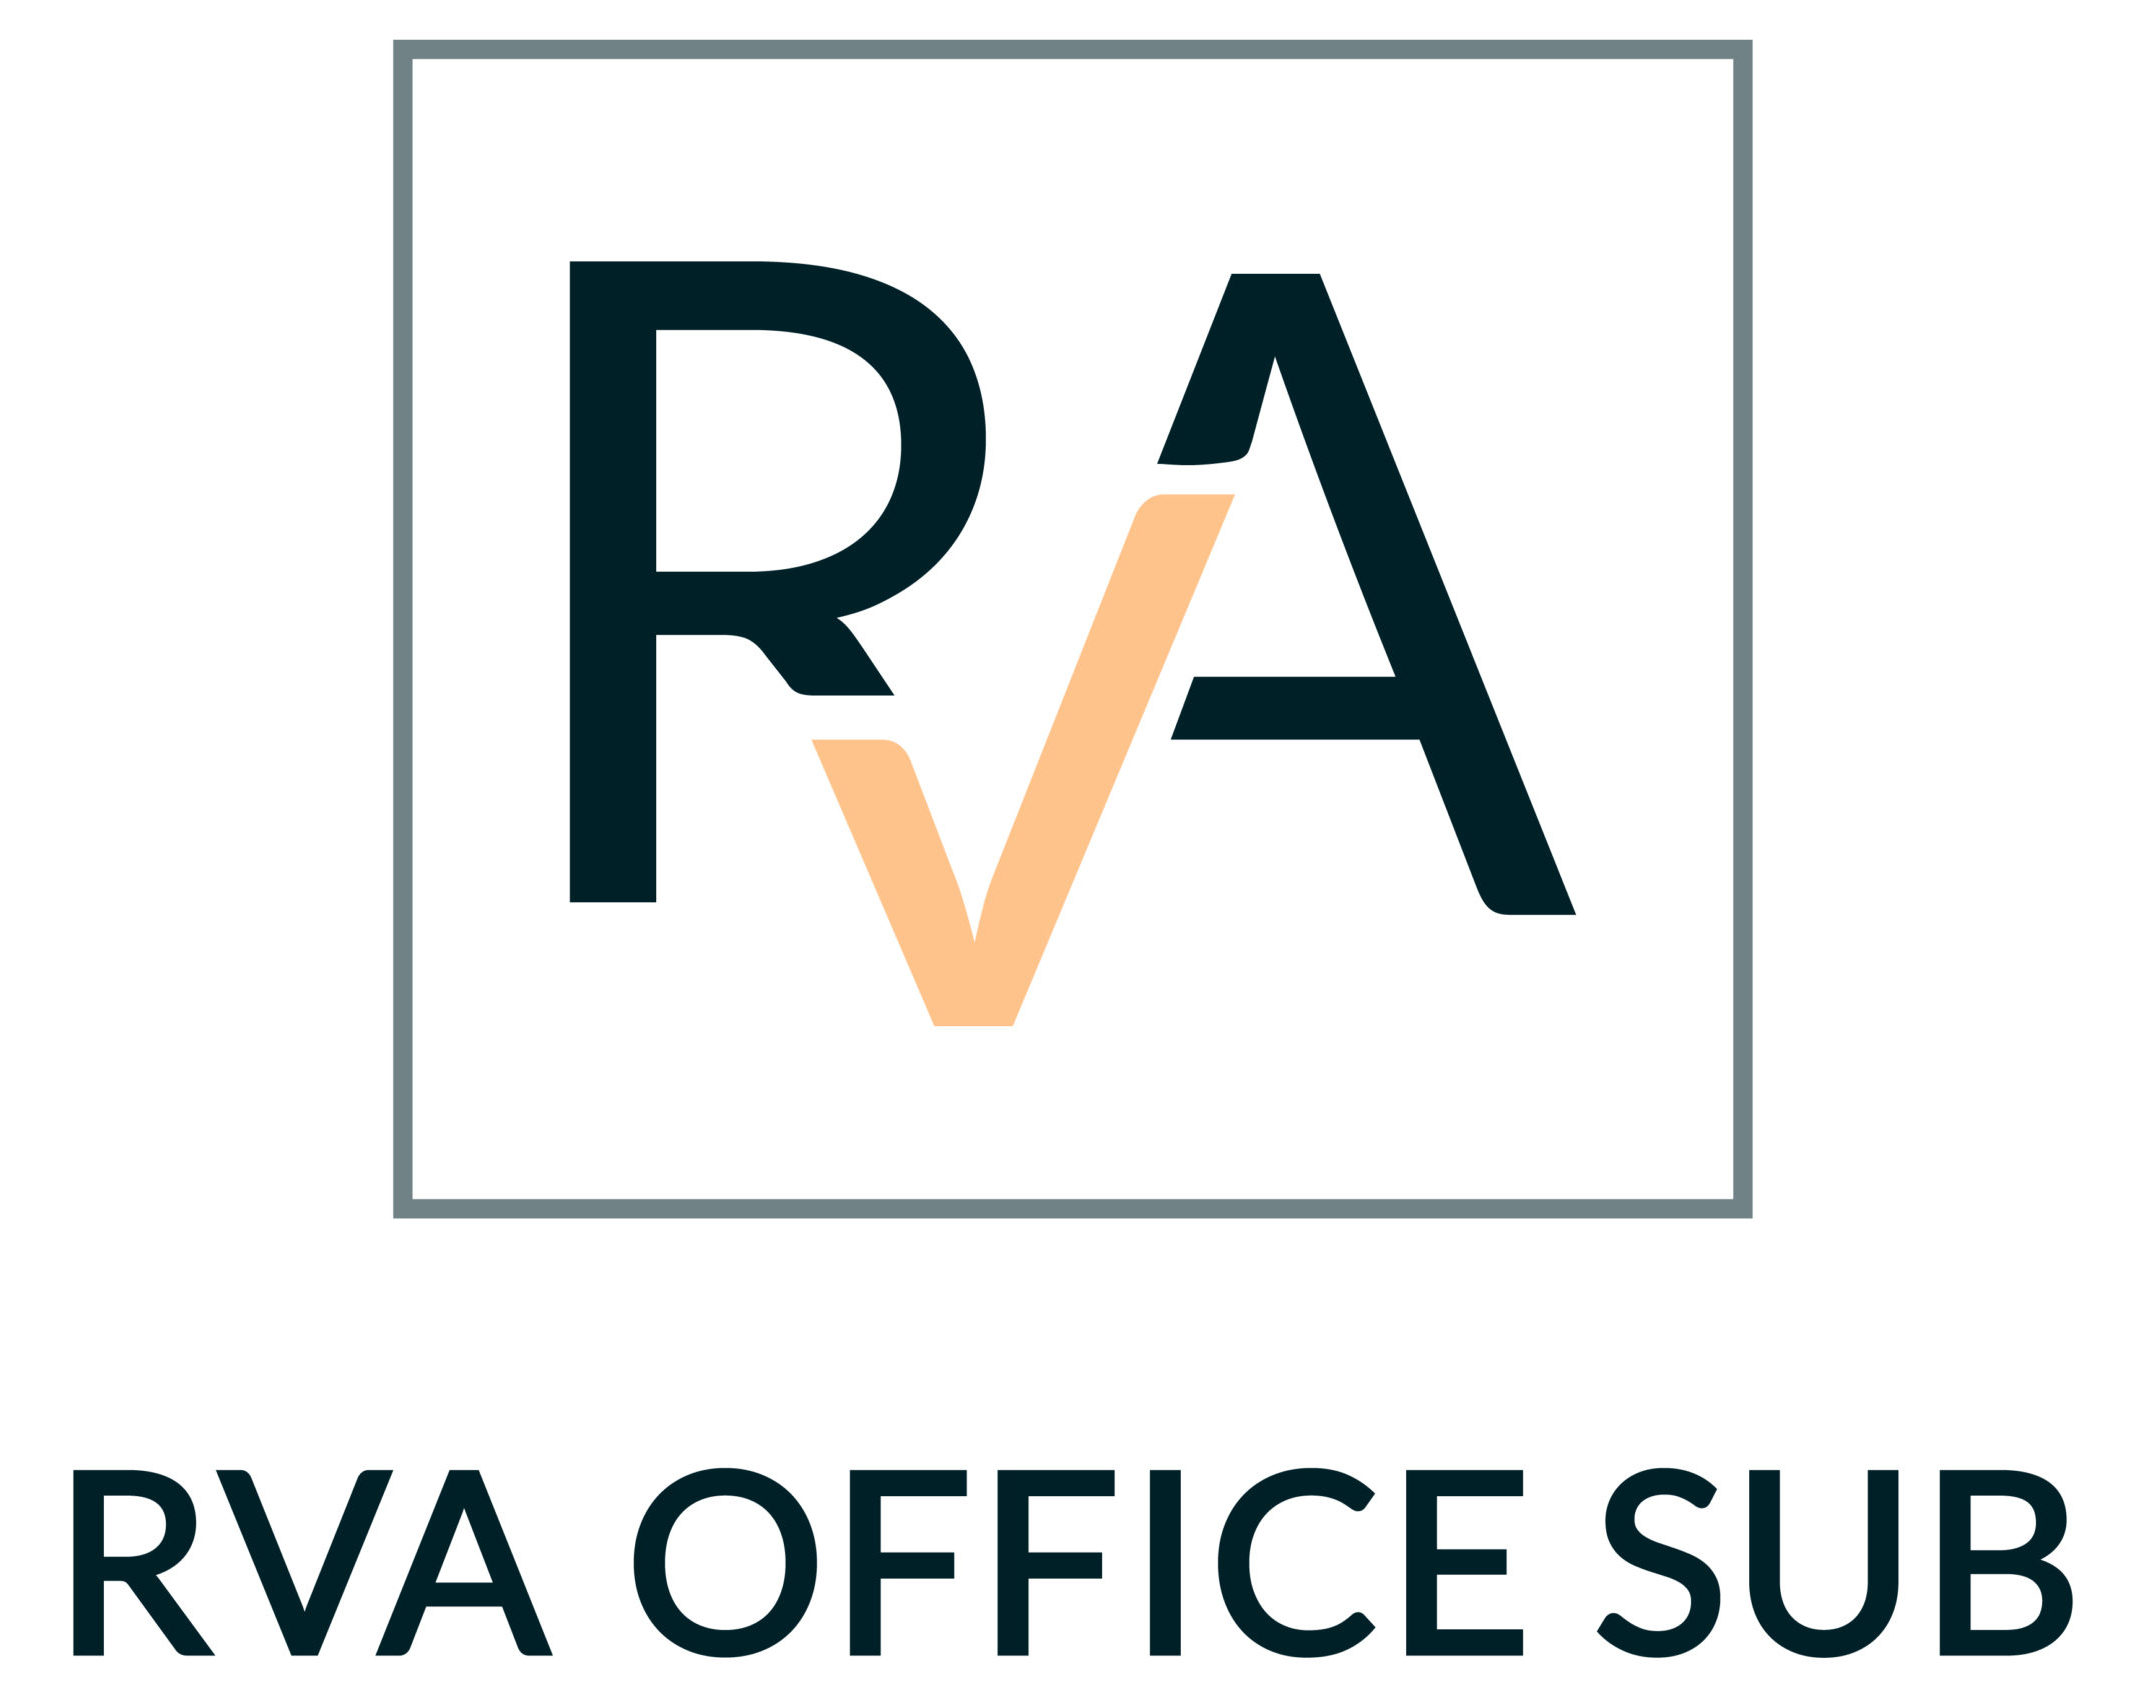 RVA Office Sub